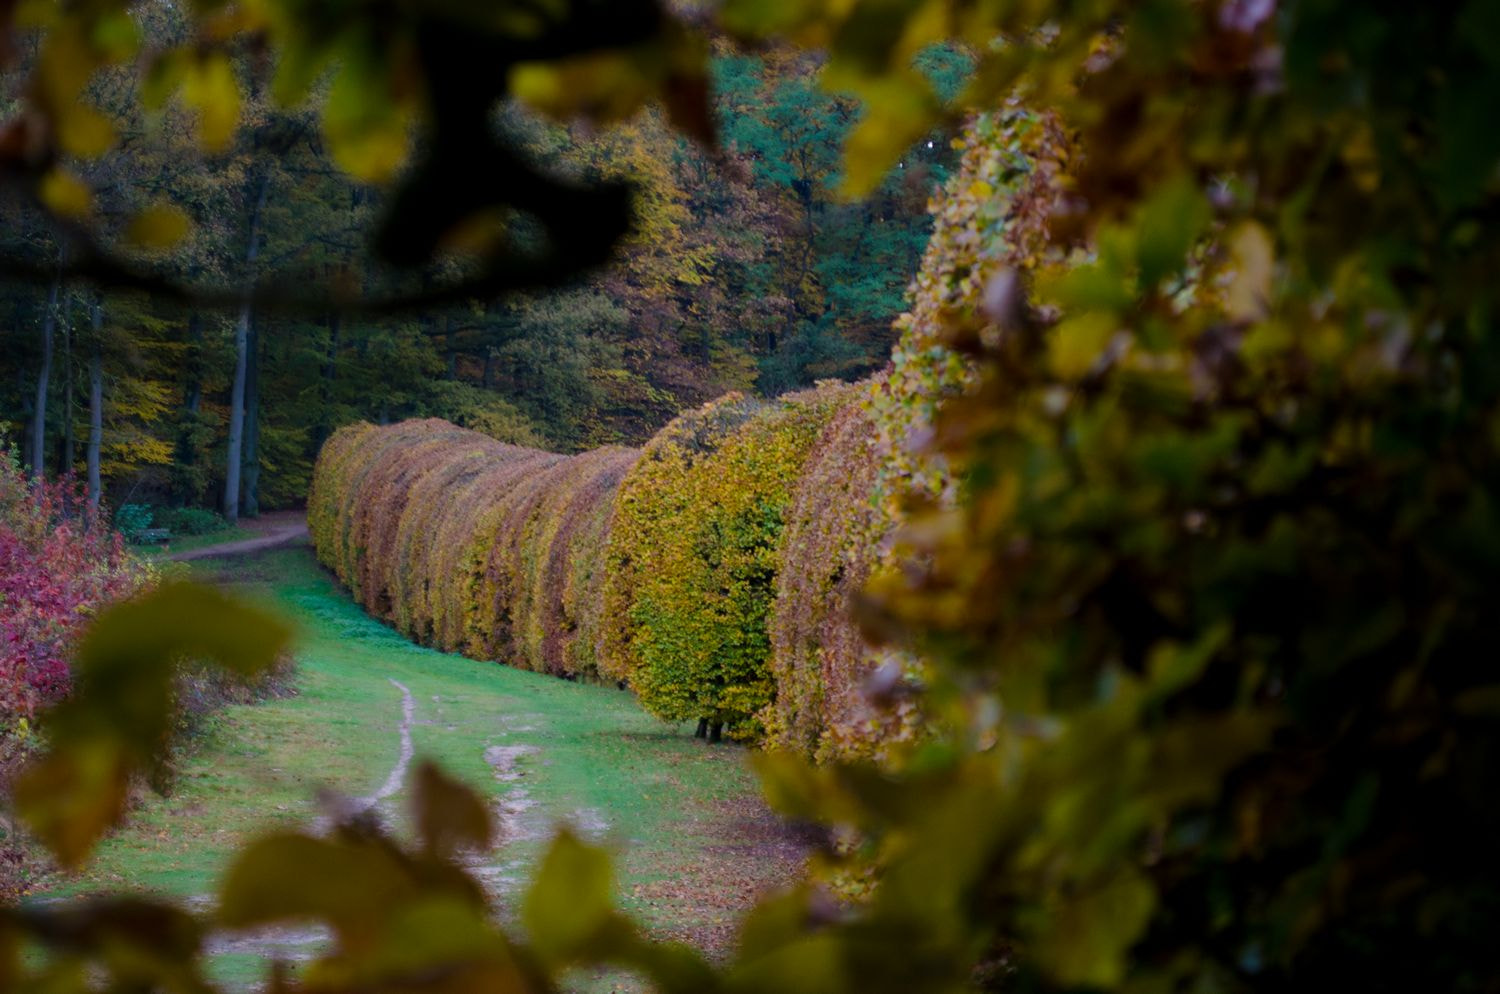 Photograph Mariendaal Oosterbeek by Happy Peppie on 500px